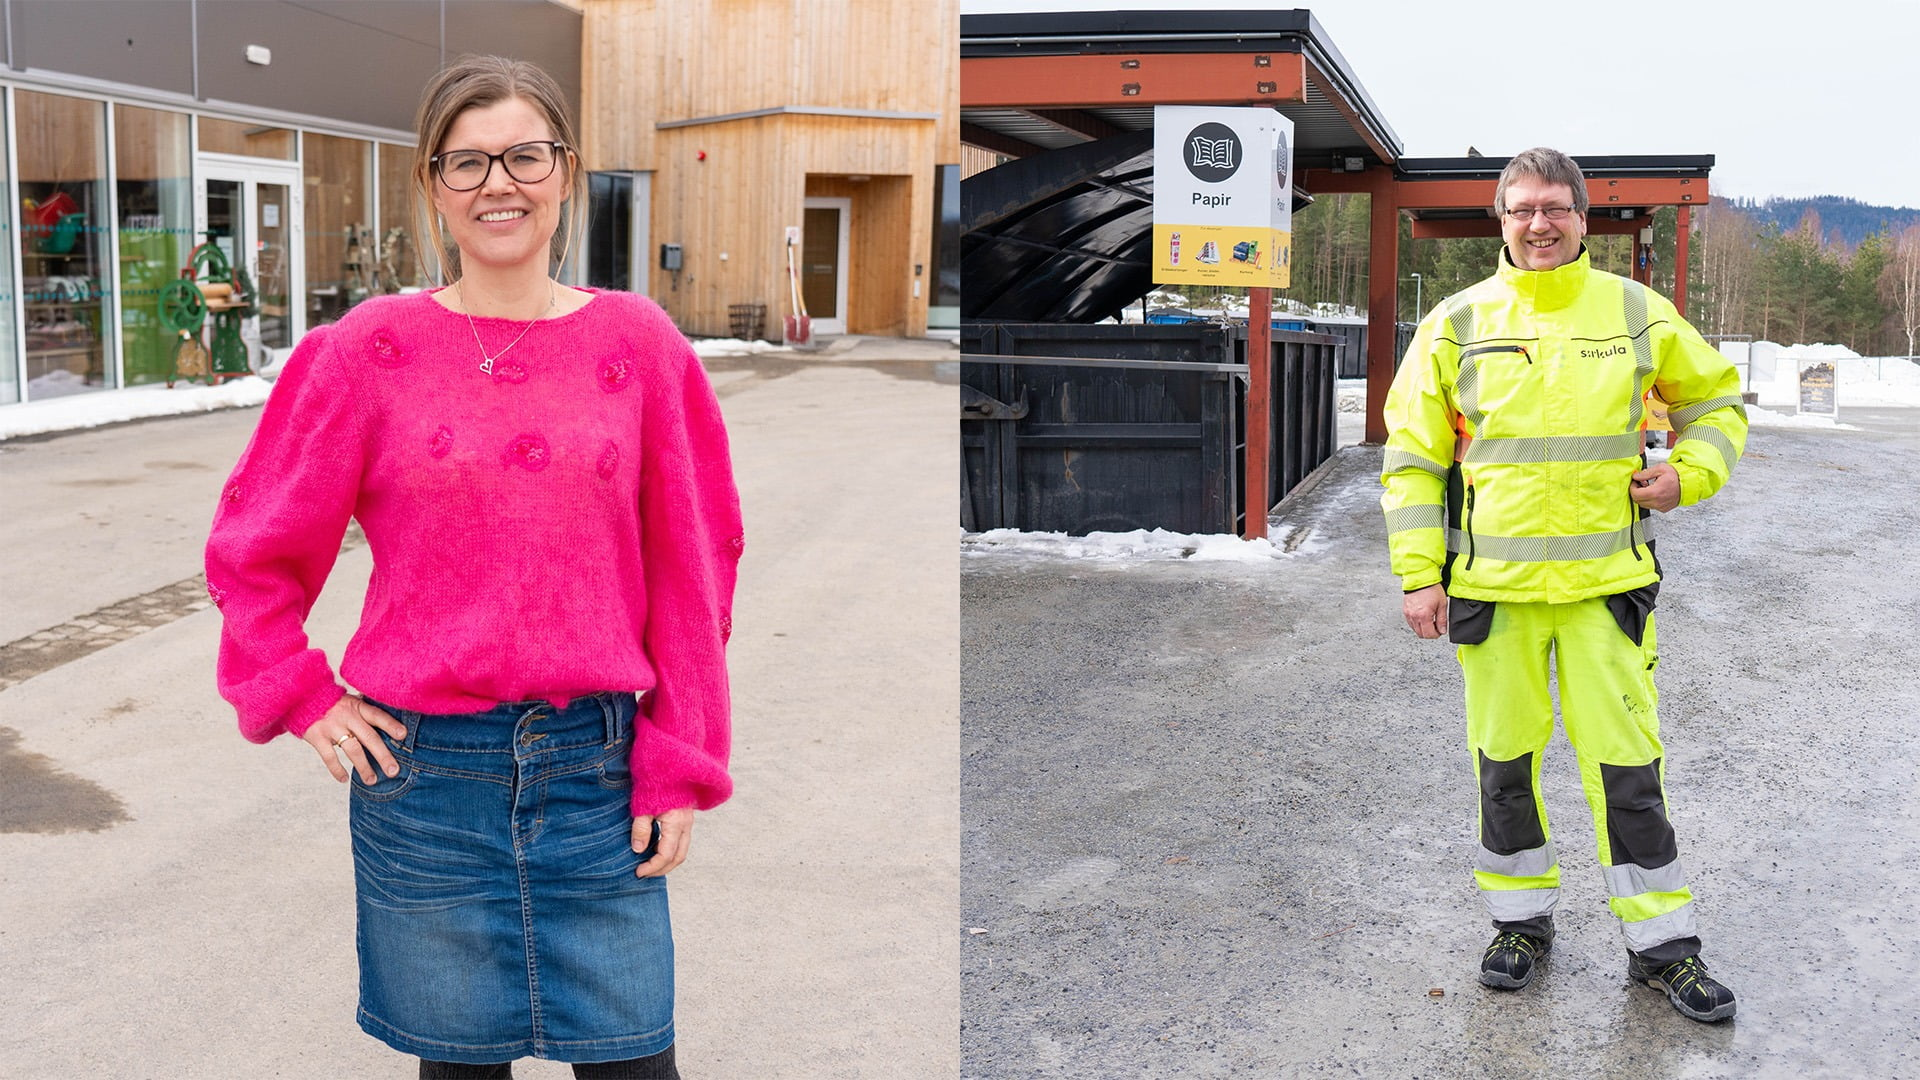 High-visibility clothing, Street fashion, Smile, Outerwear, Workwear, Building, Sleeve, Asphalt, Standing, Yellow